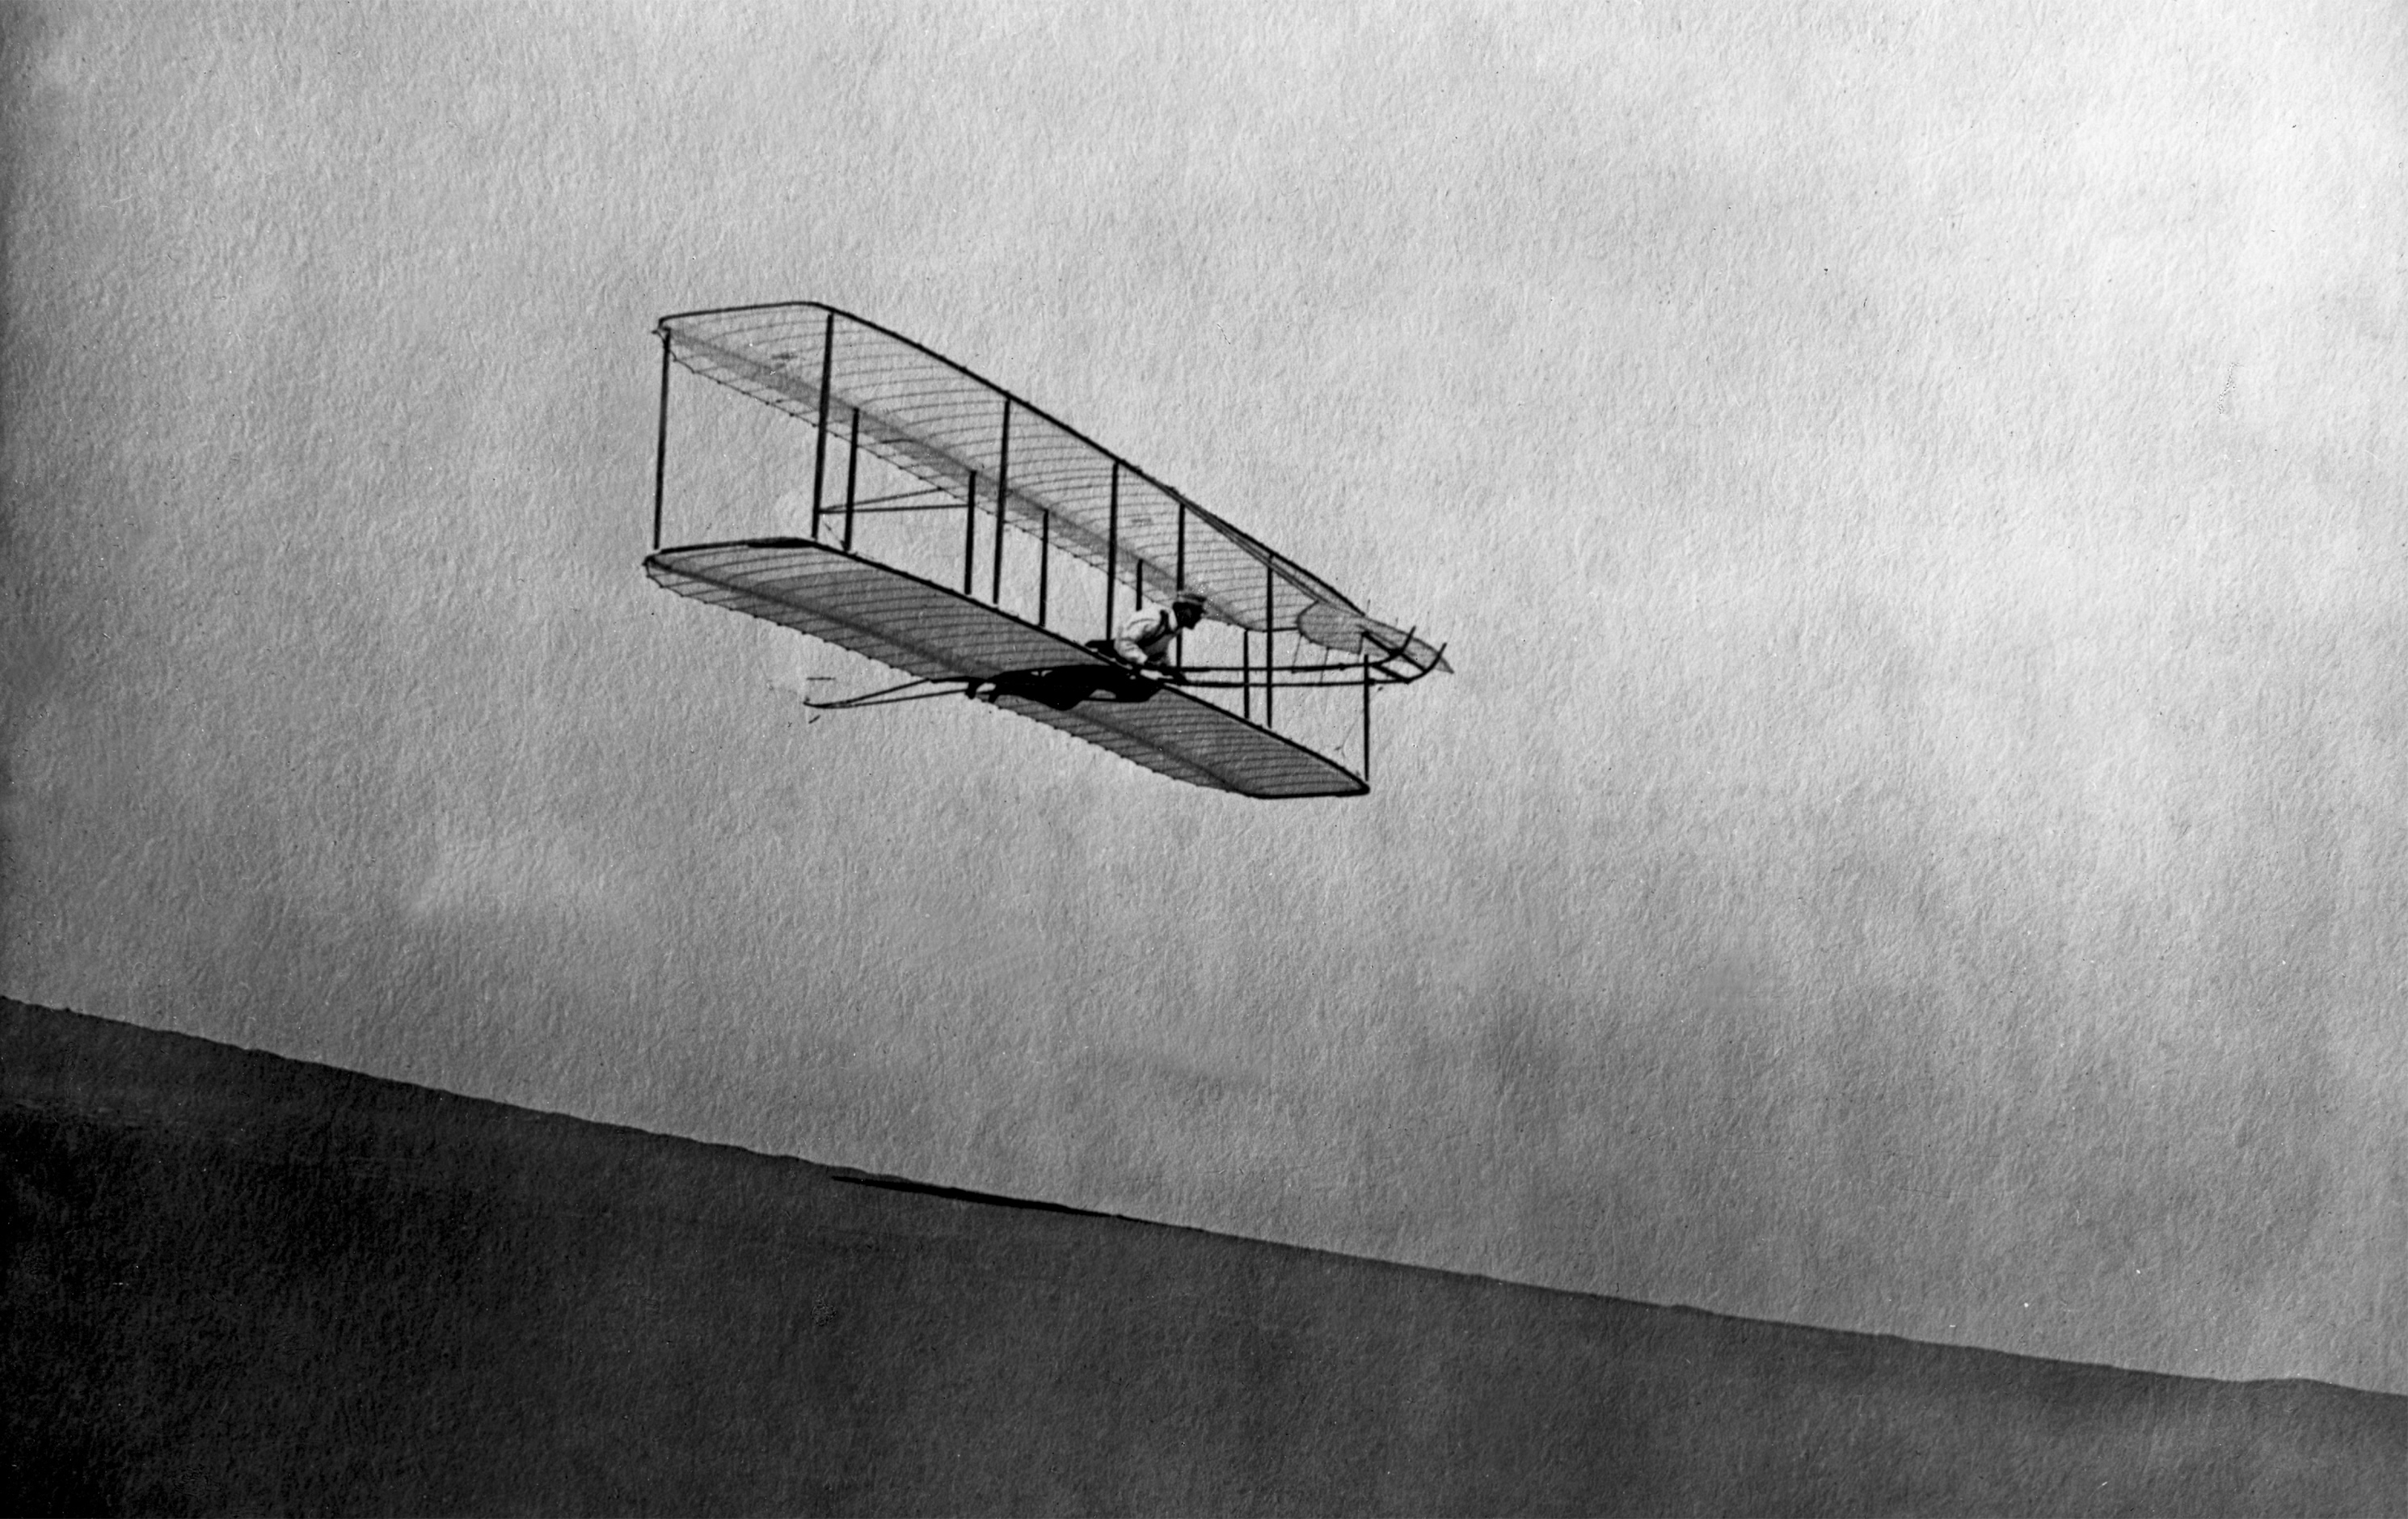 Wright 1902 Glider In Flight